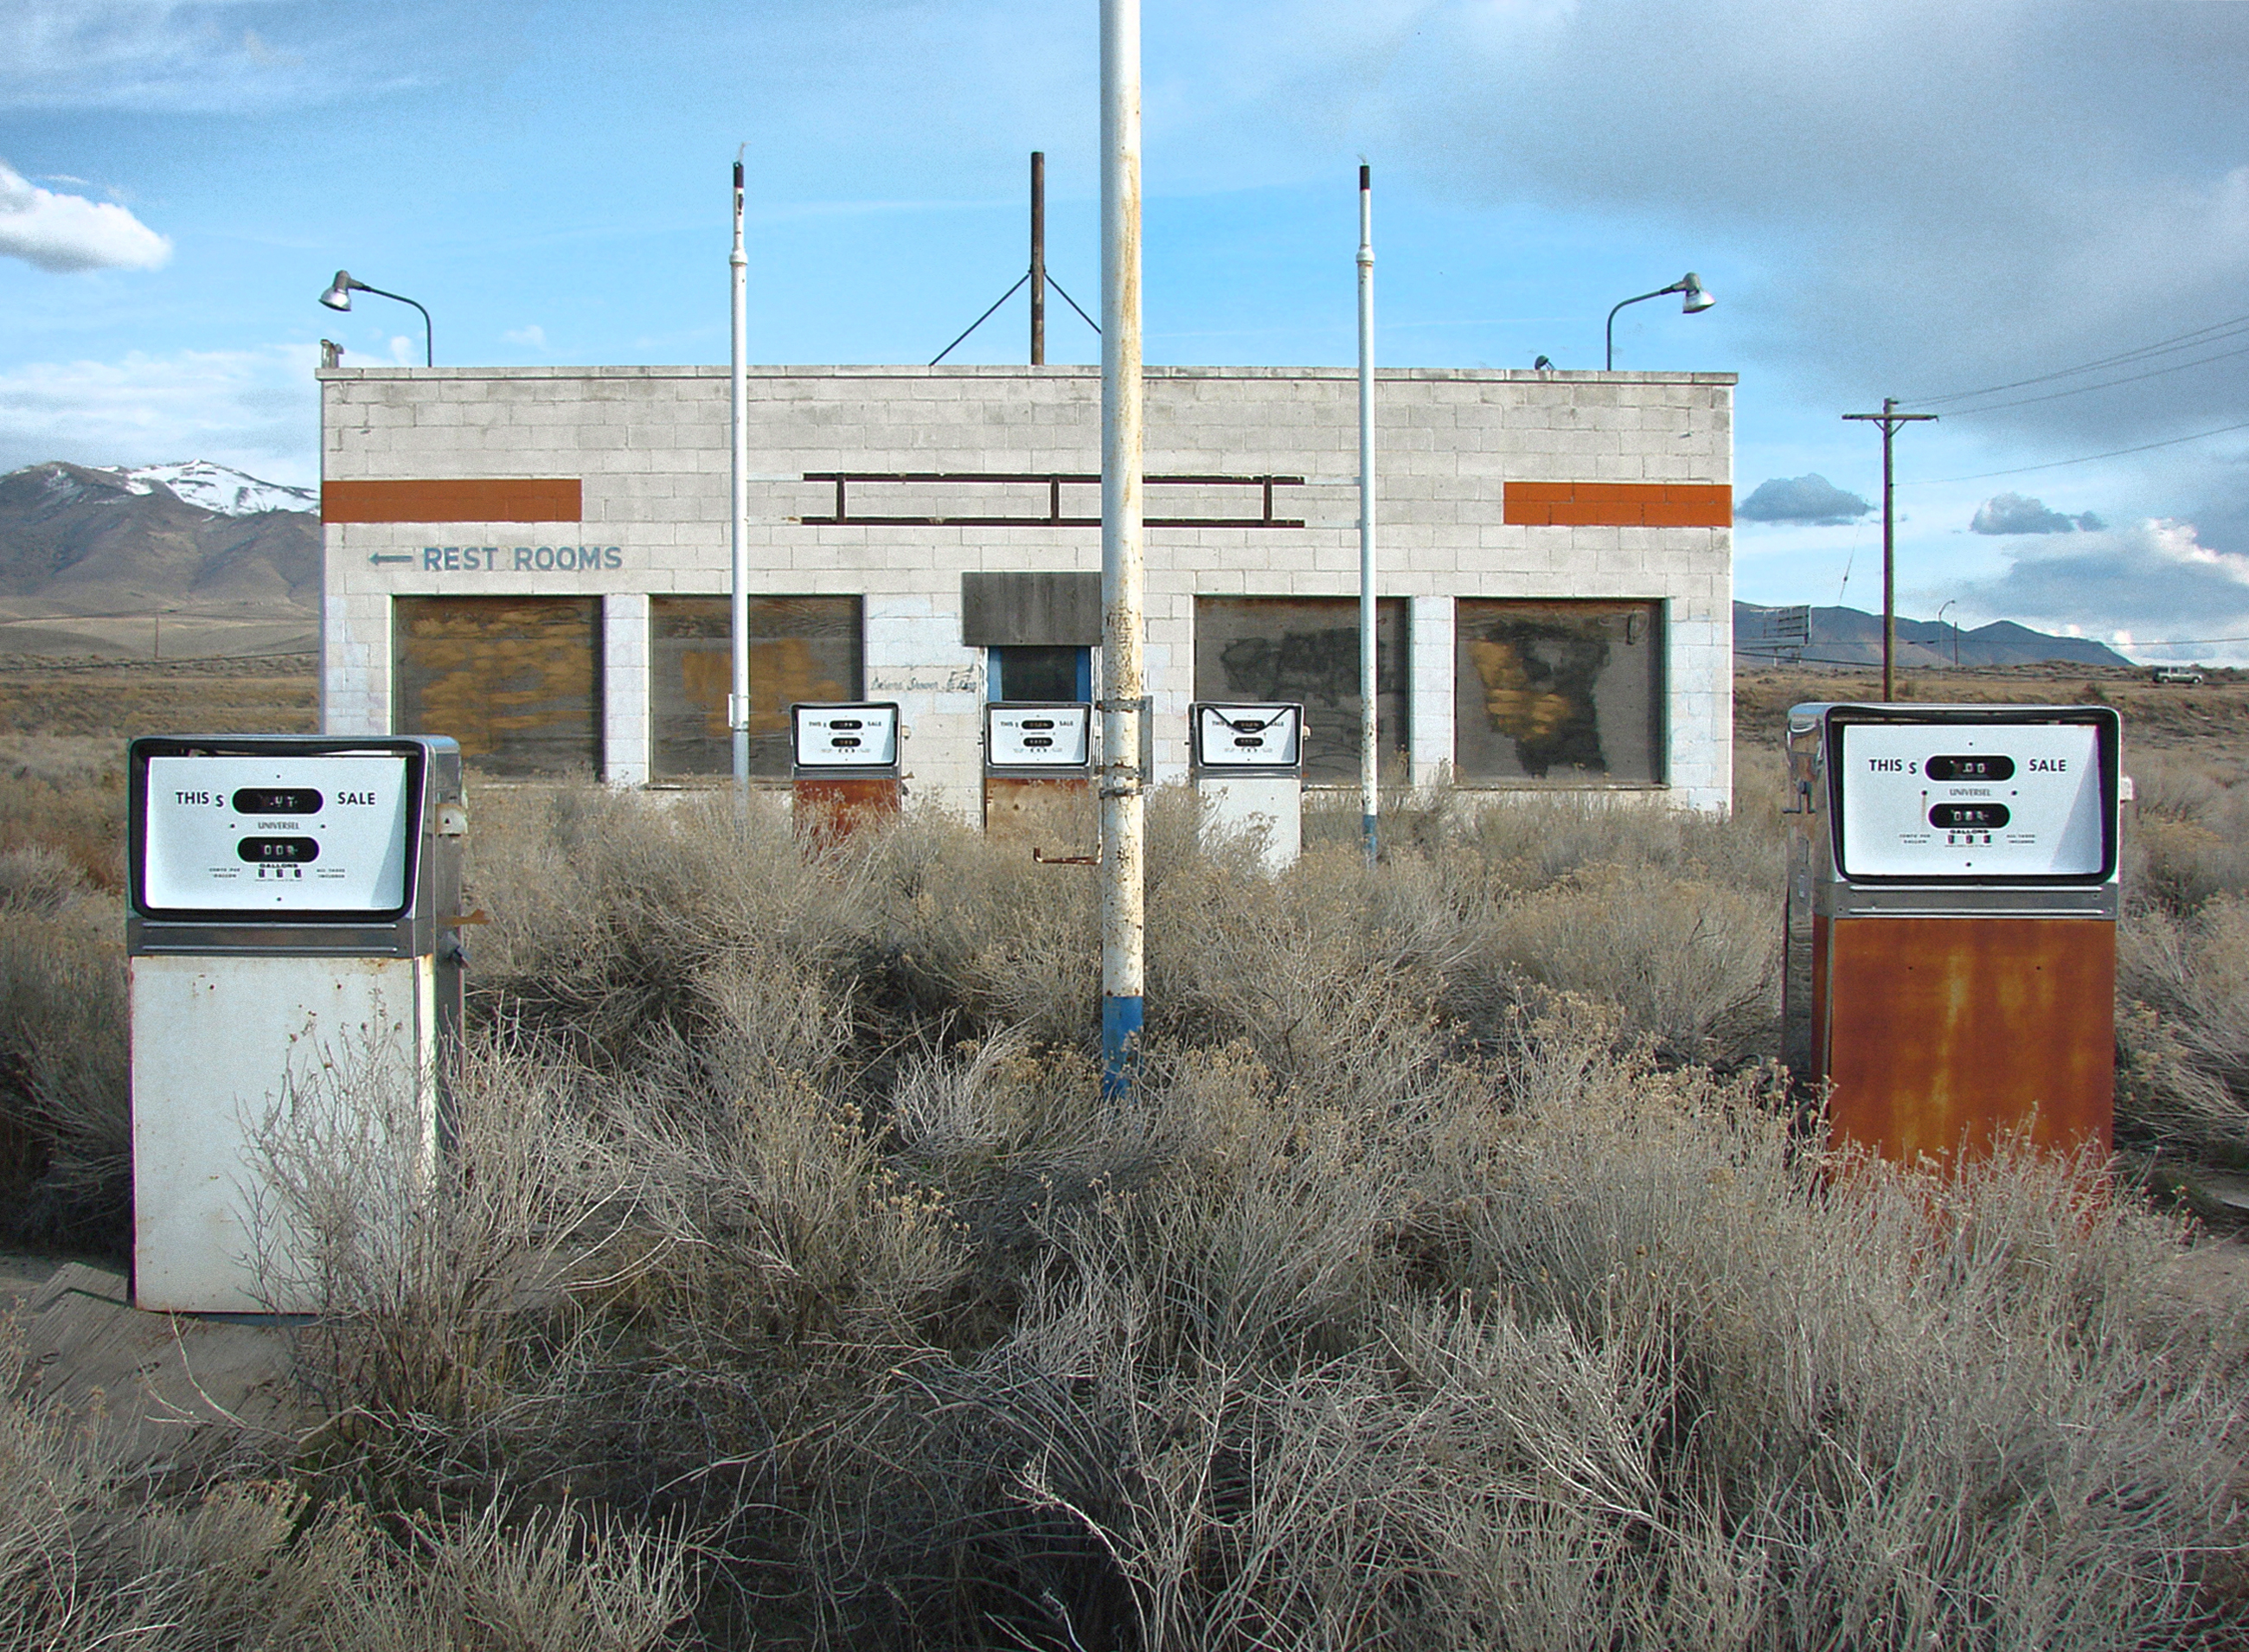 abandoned gas station - Winnemucca, Nevada U.S.A. - April 7, 2016